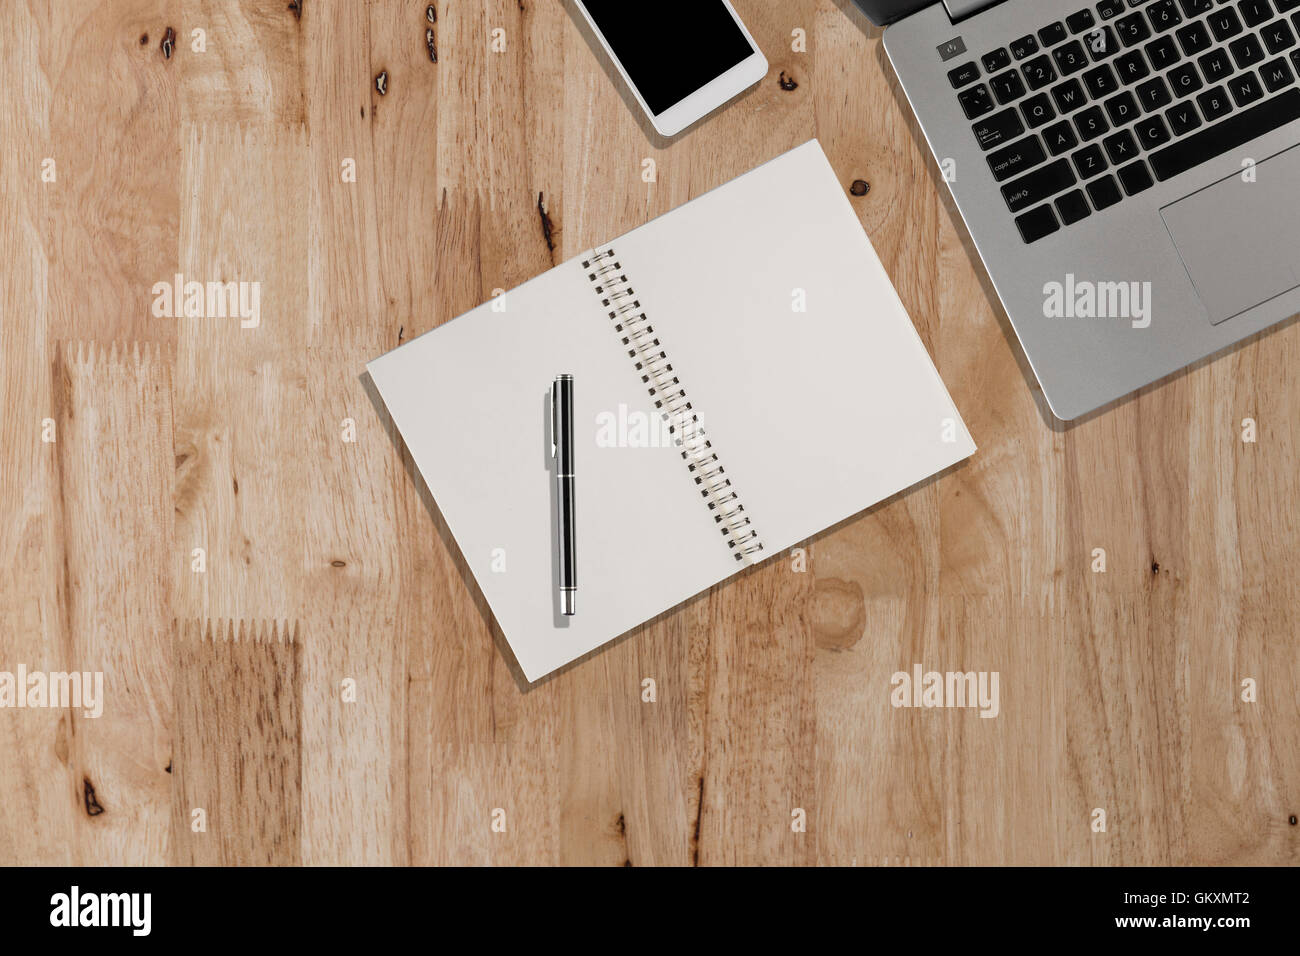 laptop, smartphone, pen, notebook on wooden desk - top view with ...